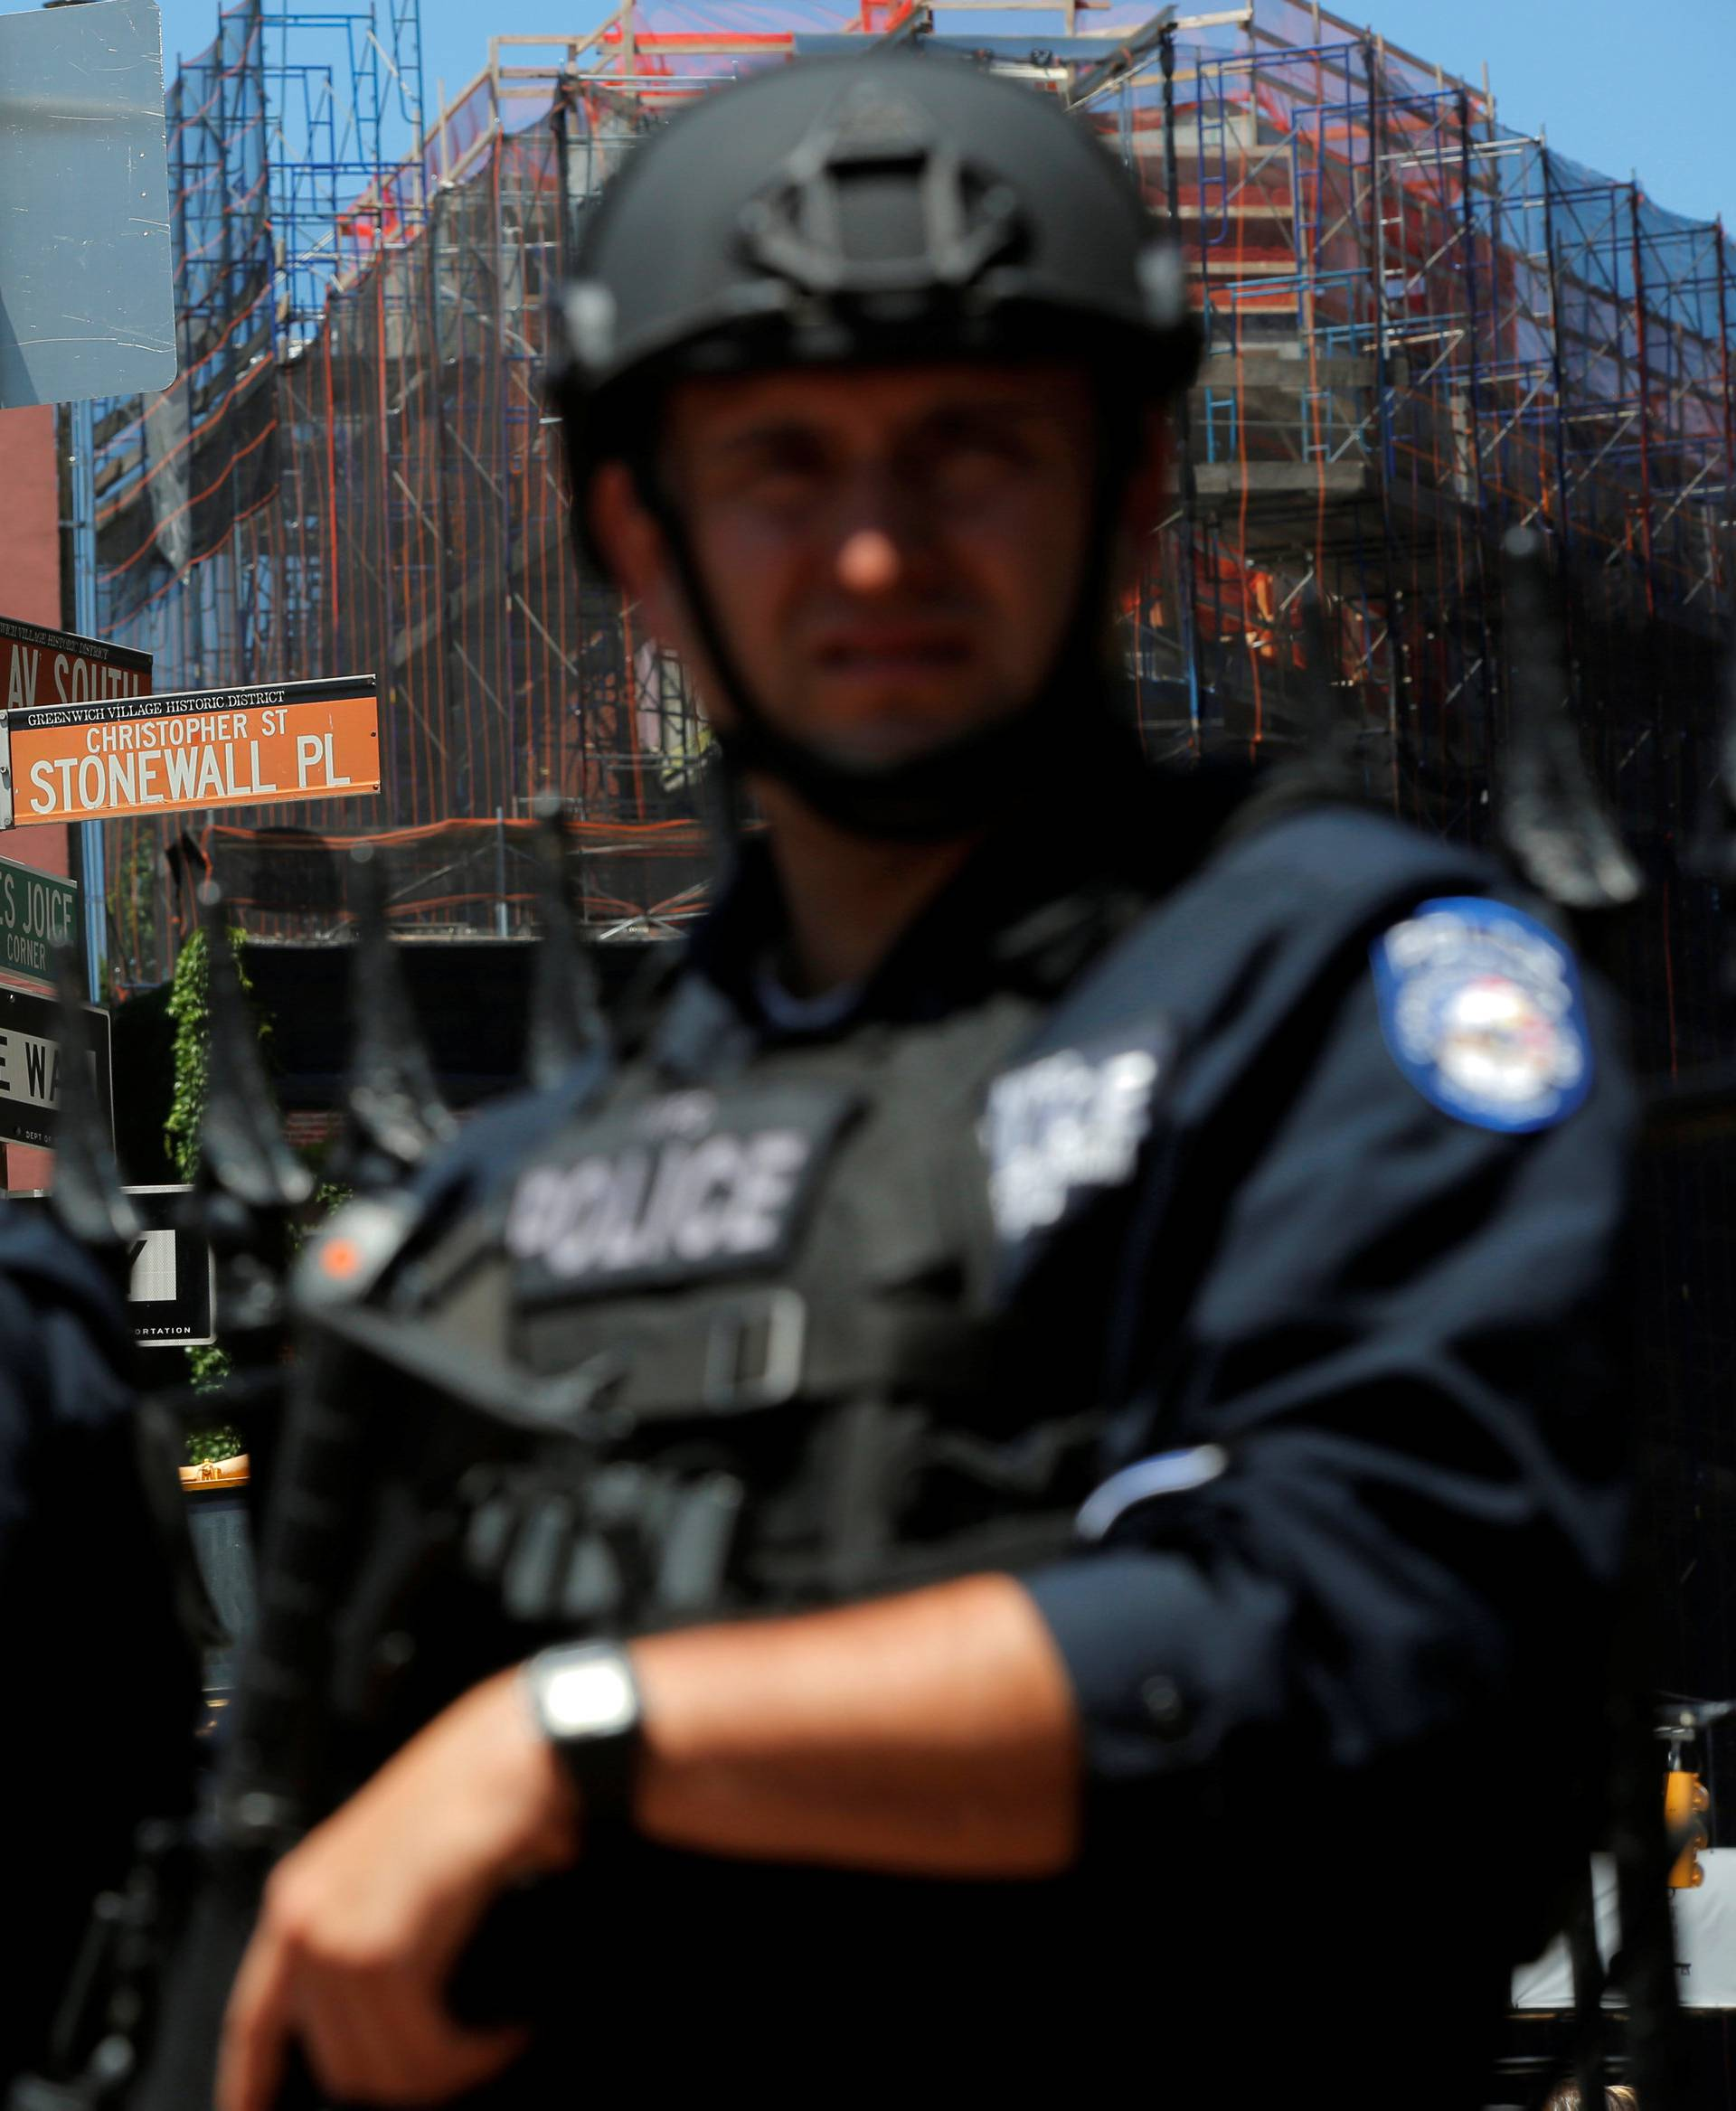 Members of the New York Police Department's Critical Response Command Unit stand guard on Christopher Street, in Manhattan